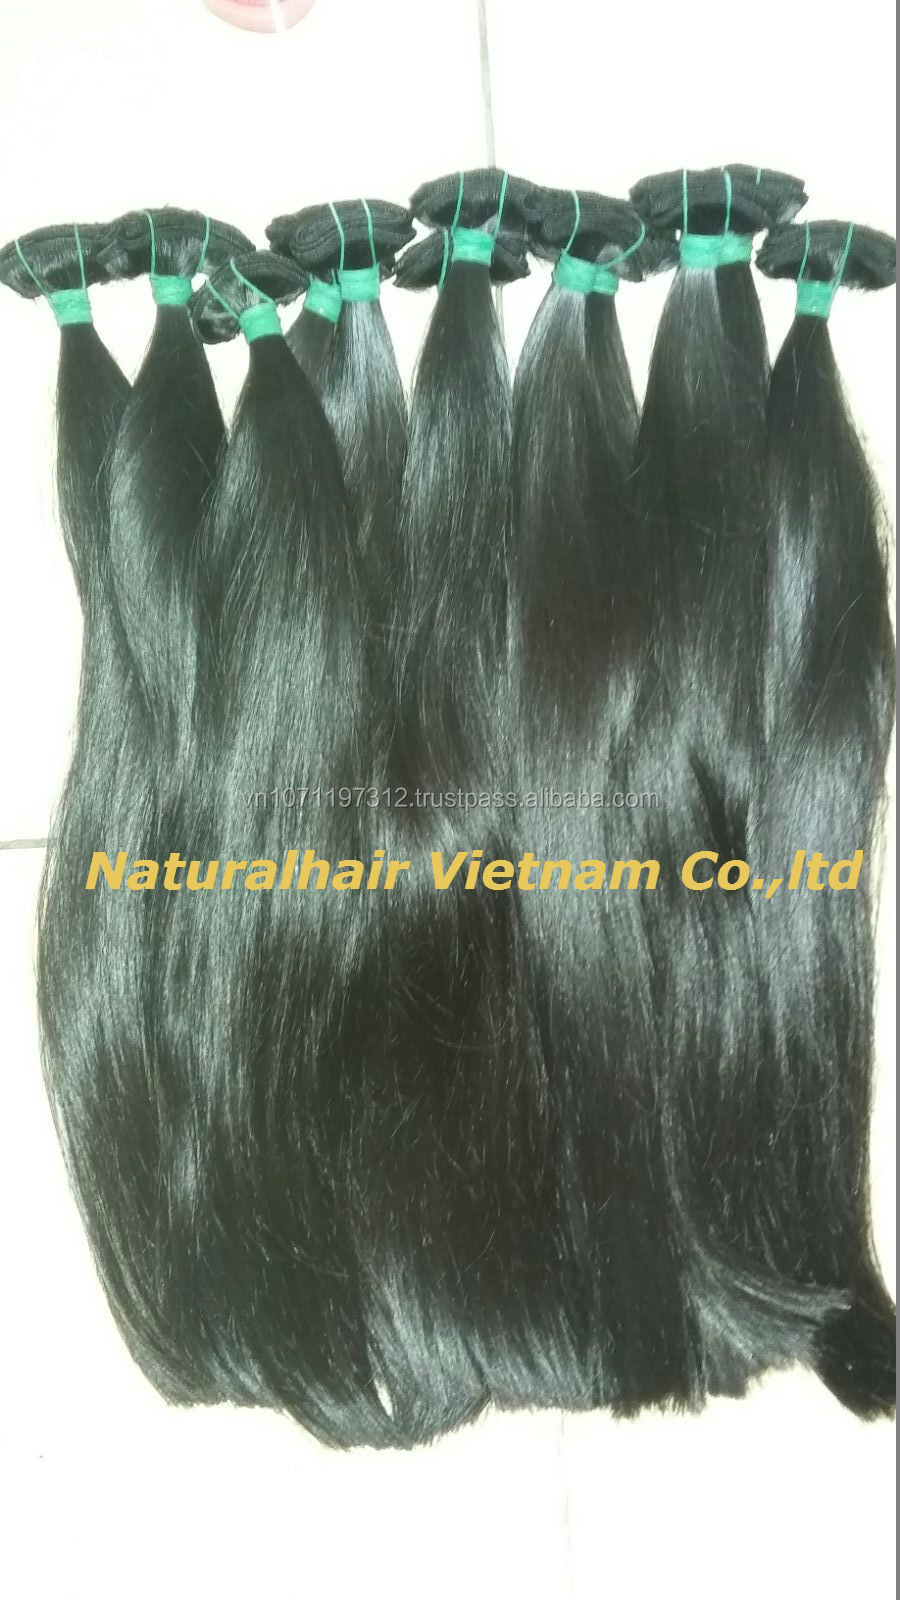 cambodian curly hair import products alibaba malaysia cambodian hair raw cambodia